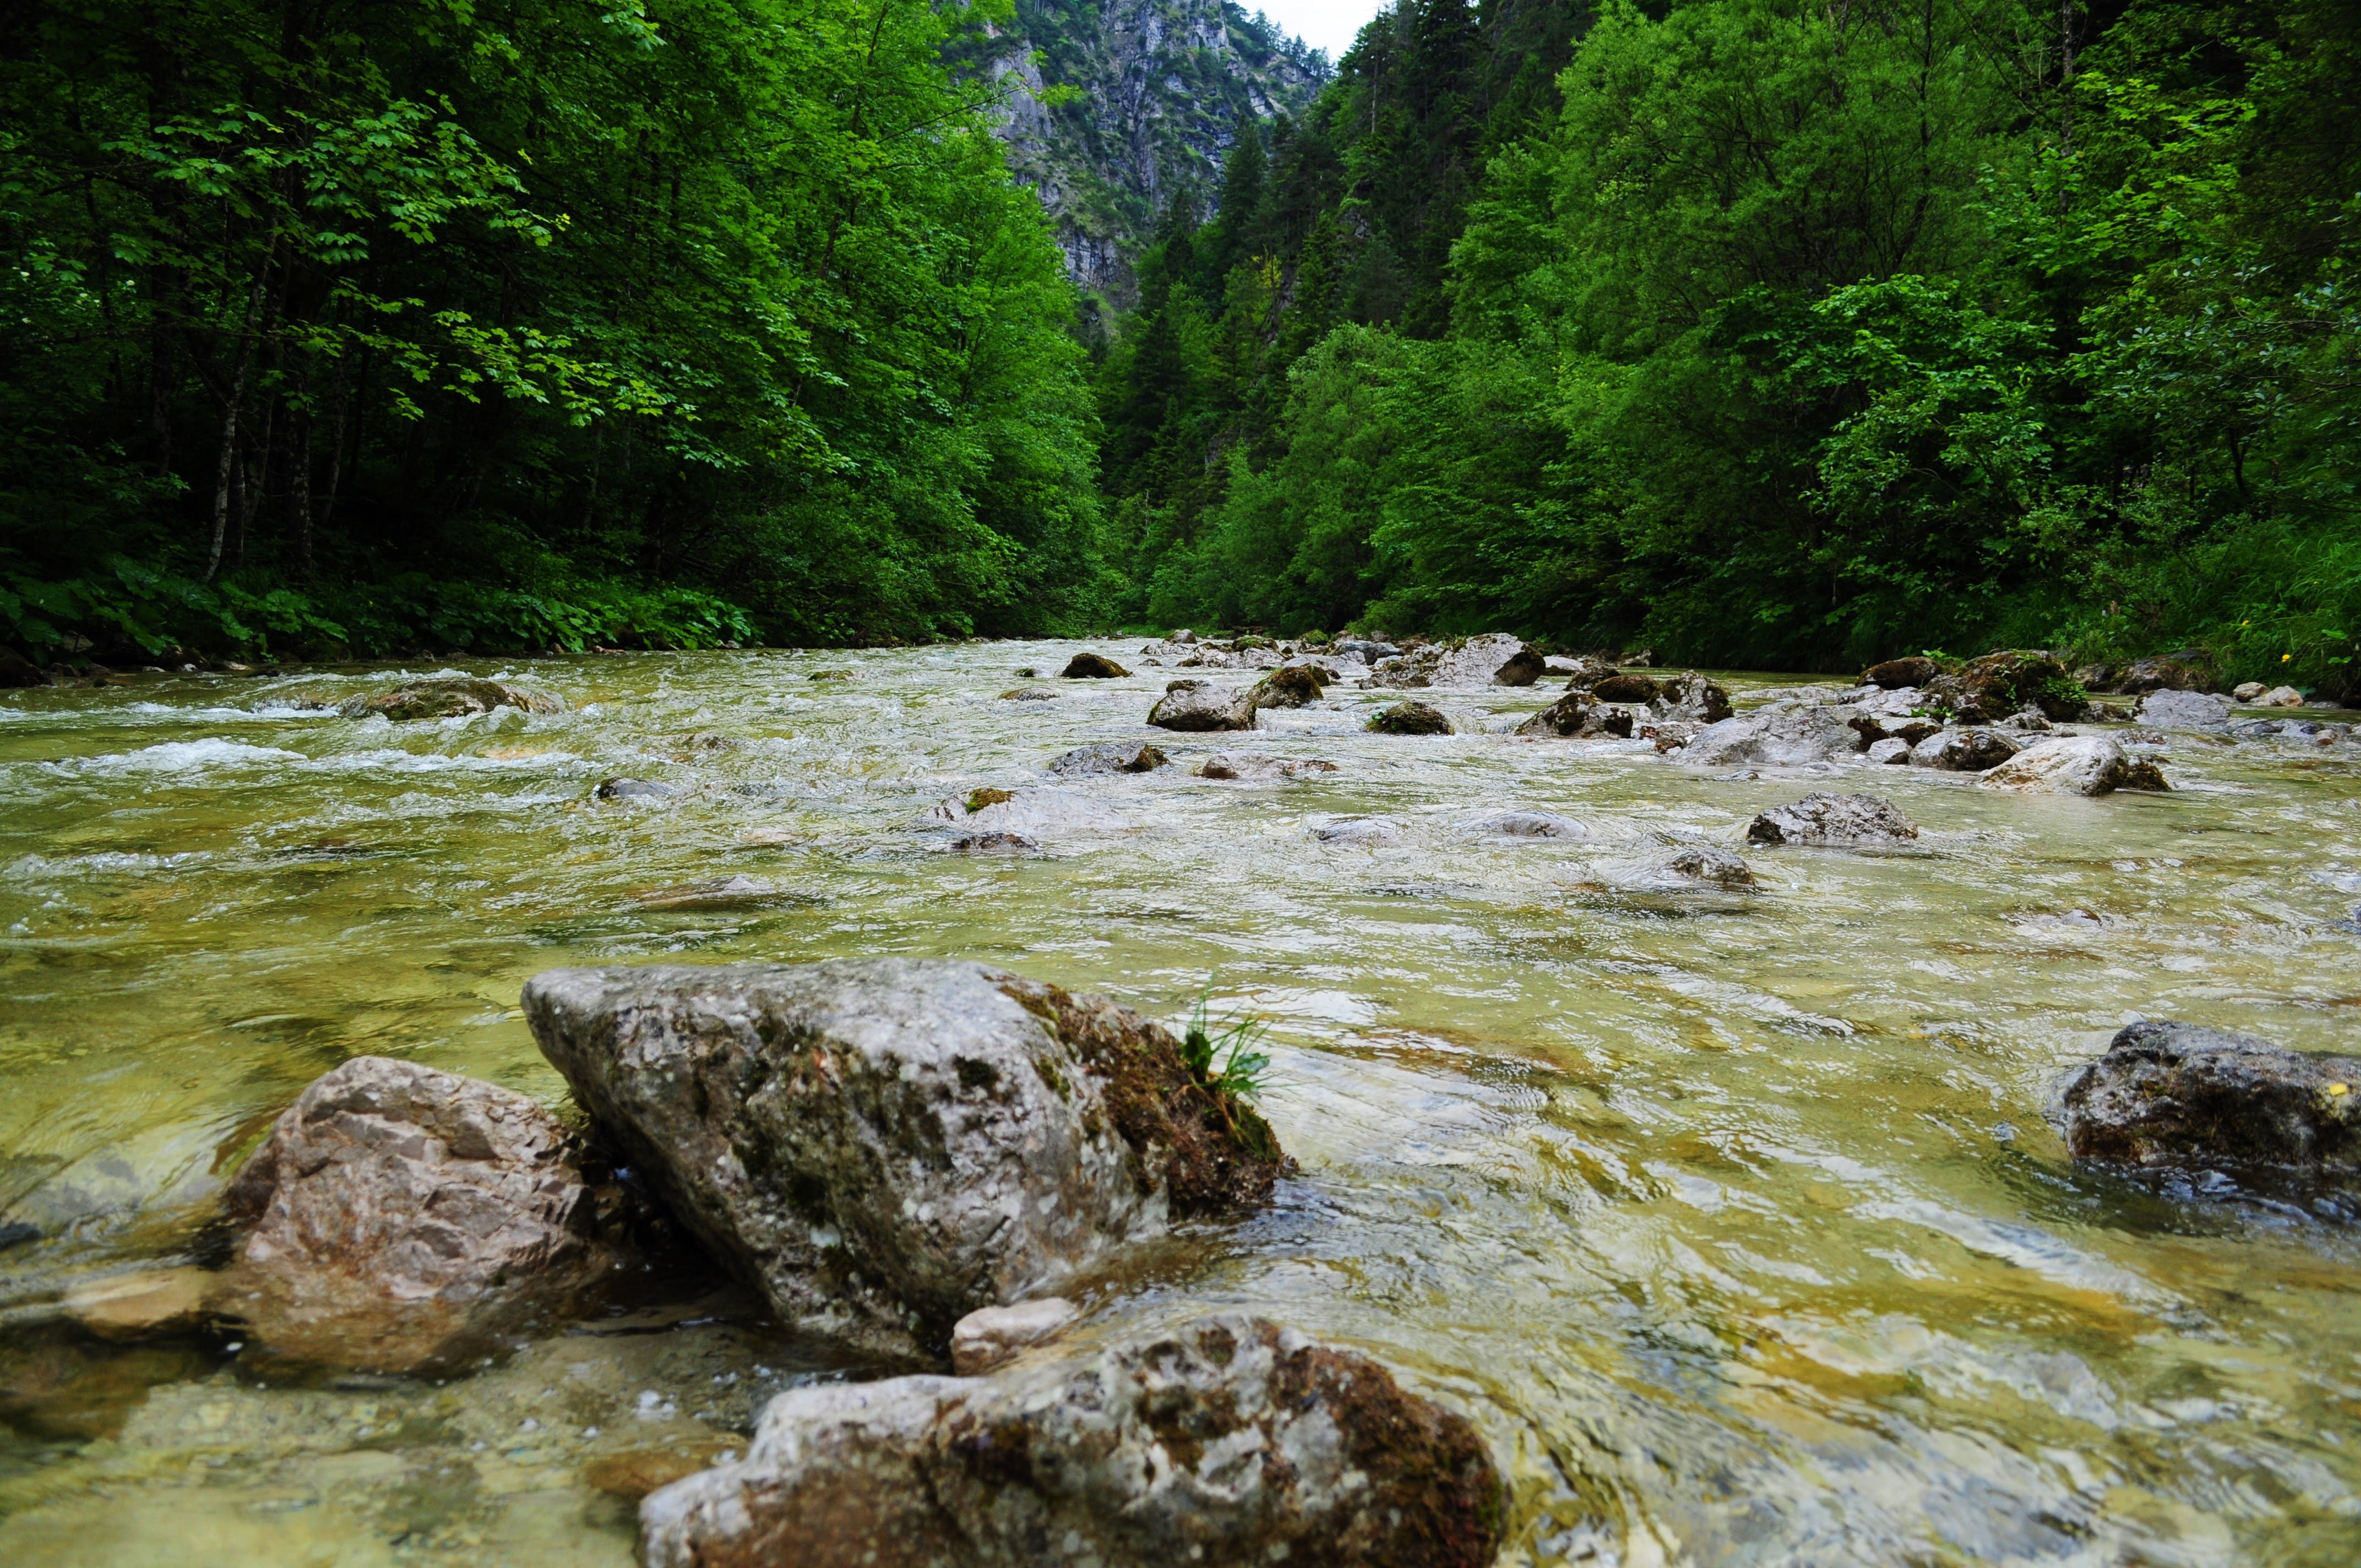 River Between Mountain Surrounded by Green Leaf Trees